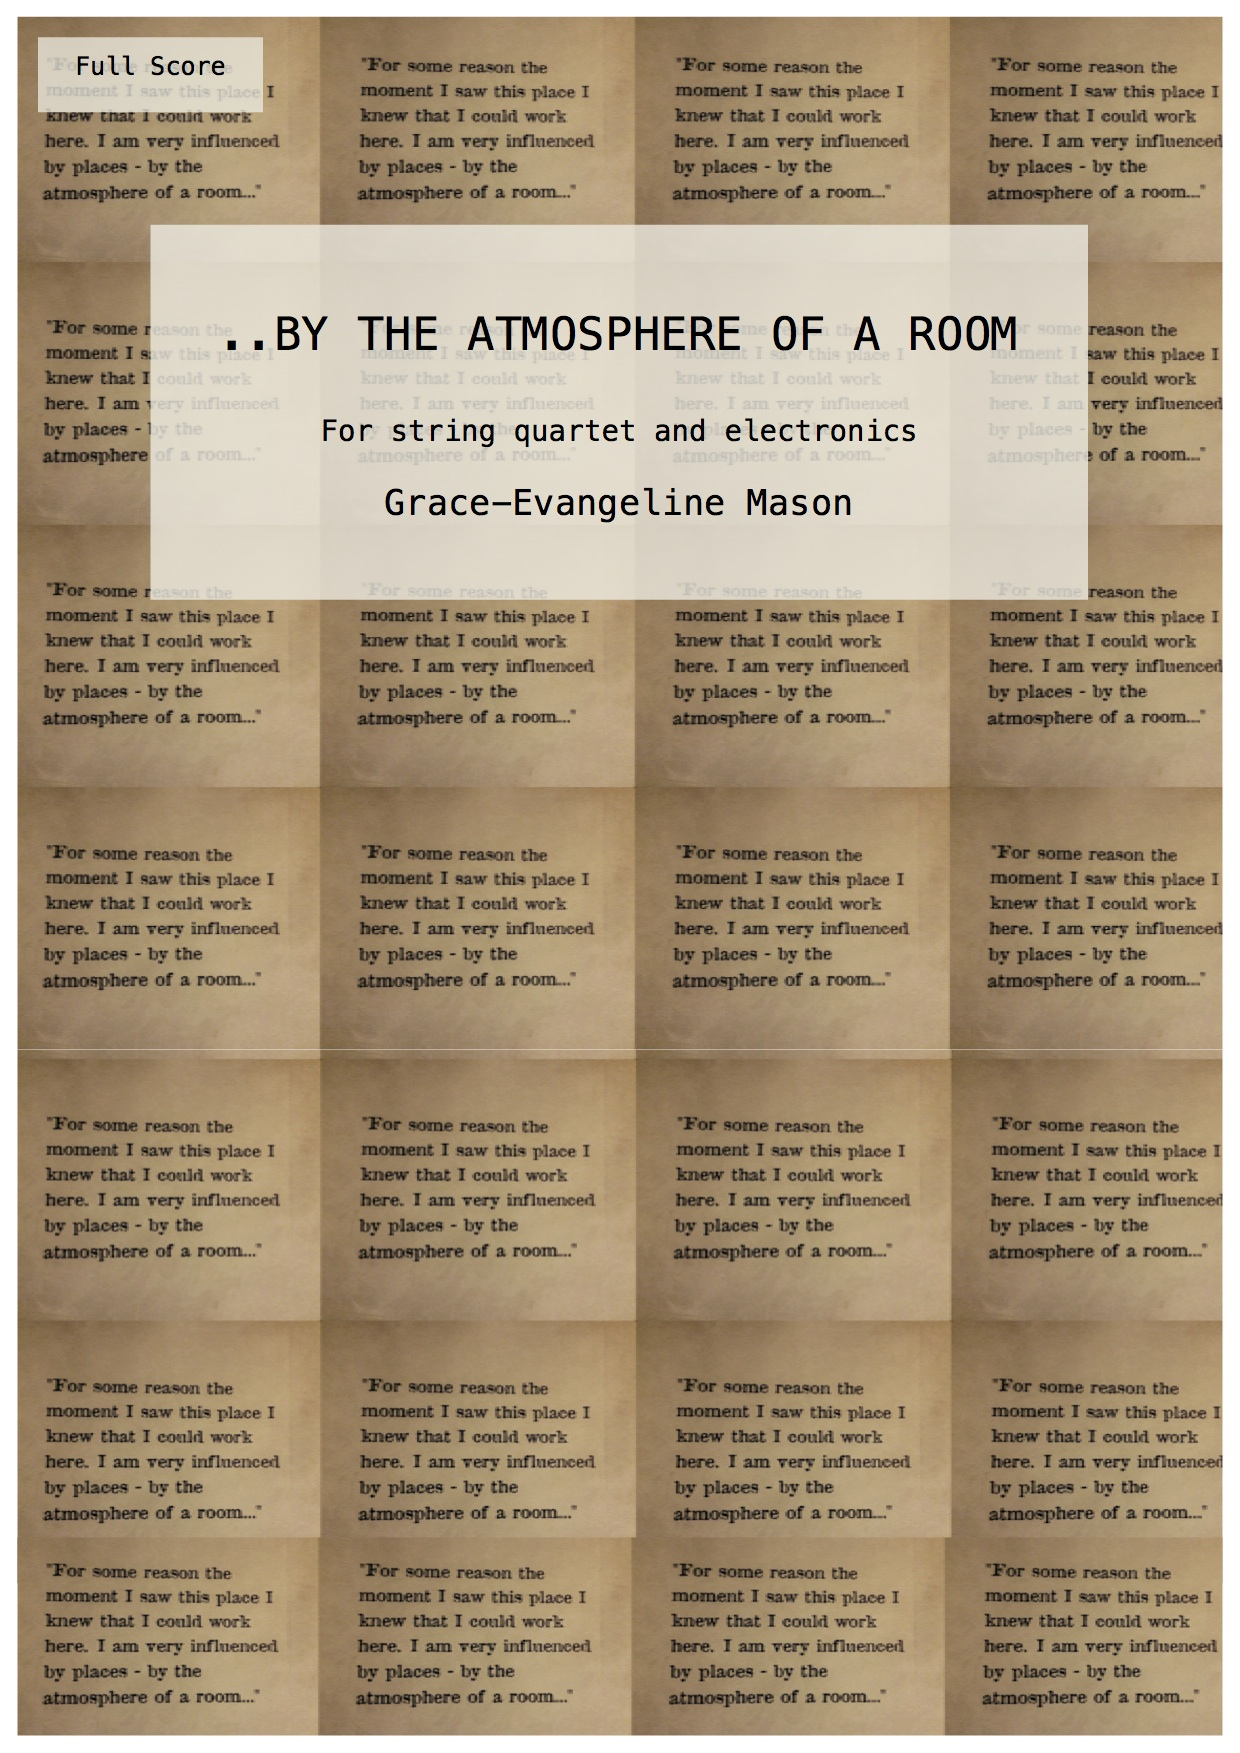 '..BY THE ATMOSPHERE OF A ROOM' (2016) - for string quartet and electronicsDuration: 8'Written for Larry Goves' 'Decontamination' Concert Series, RNCM, performed by the Marvolo Quartet (01/11/16)'For string quartet and electronics, '..By The Atmosphere Of A Room' seeks to create a dense, ambient environment to reflect infinity. Inspired by the interests and piano works of Pierre Boulez, who has been referred to as 'An Eternal Musical Icon' and an 'Eternal Enigma,' the piece is an immersive, and seemingly eternal, harmonic soundworld. Fragments influenced by the technique of integral serialism break through the texture and rise to the forefront to emulate Boulez's compositional strategies. This occurs in the centre of the piece, framed by atmospheric textures, and is represented in both the string quartet and the electronics.The title is taken from a quote by the artist Francis Bacon, who influenced the works of Boulez, written on the wall of the Francis Bacon Studio Exhibition, Dublin City Gallery.'©G.E.M.2016©Cover Image: 'By The Atmosphere Of A Room' by Grace-Evangeline Mason 2016